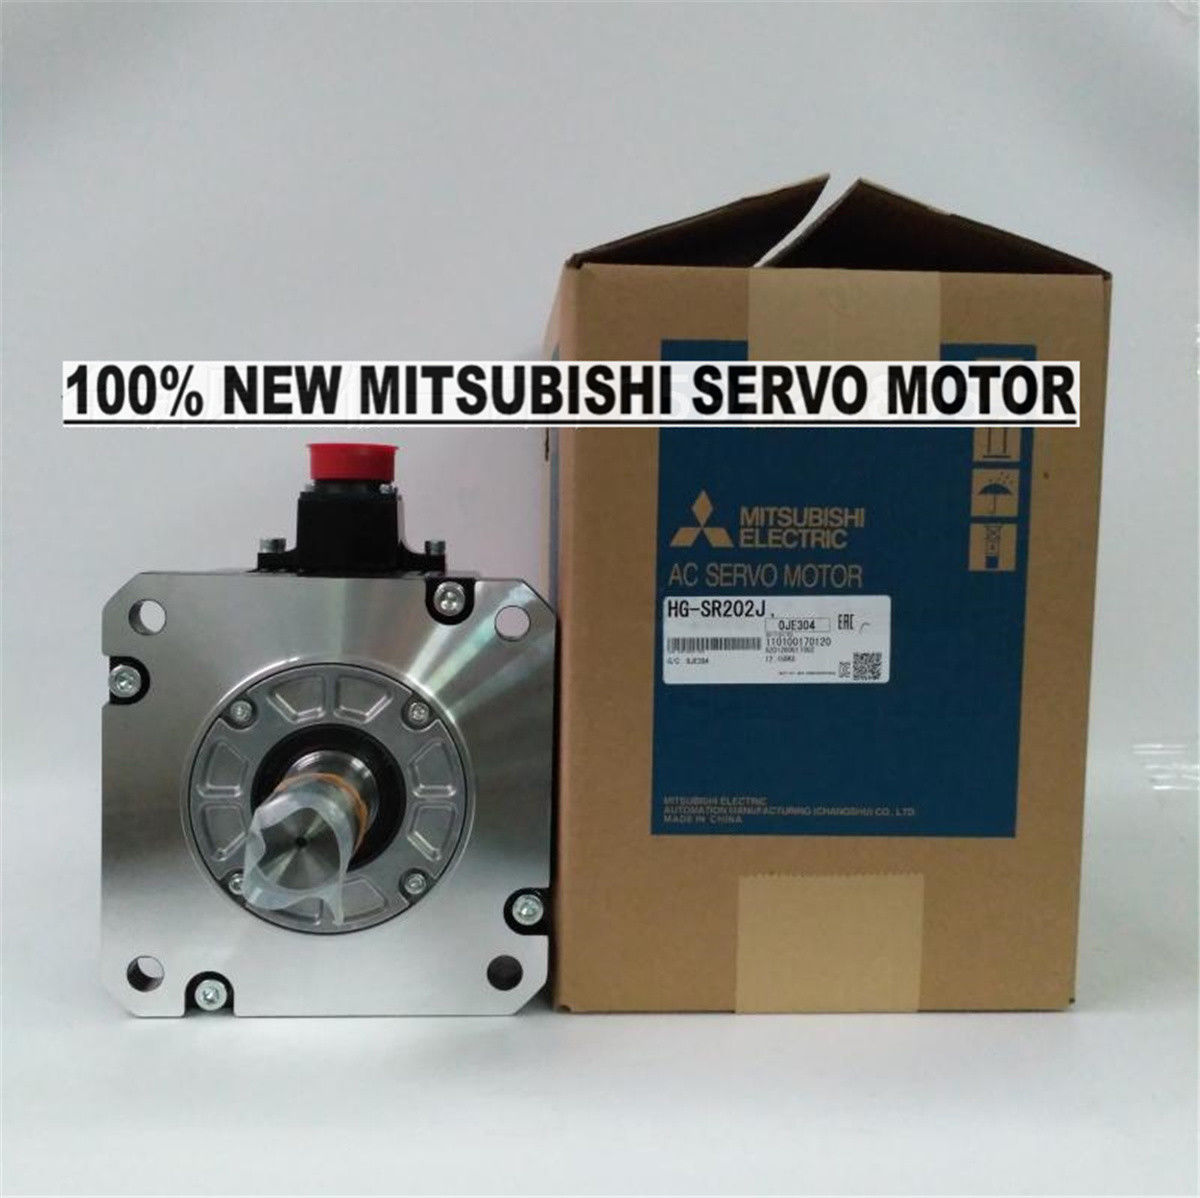 Genuine NEW Mitsubishi Servo Motor HG-SR202J in box HGSR202J